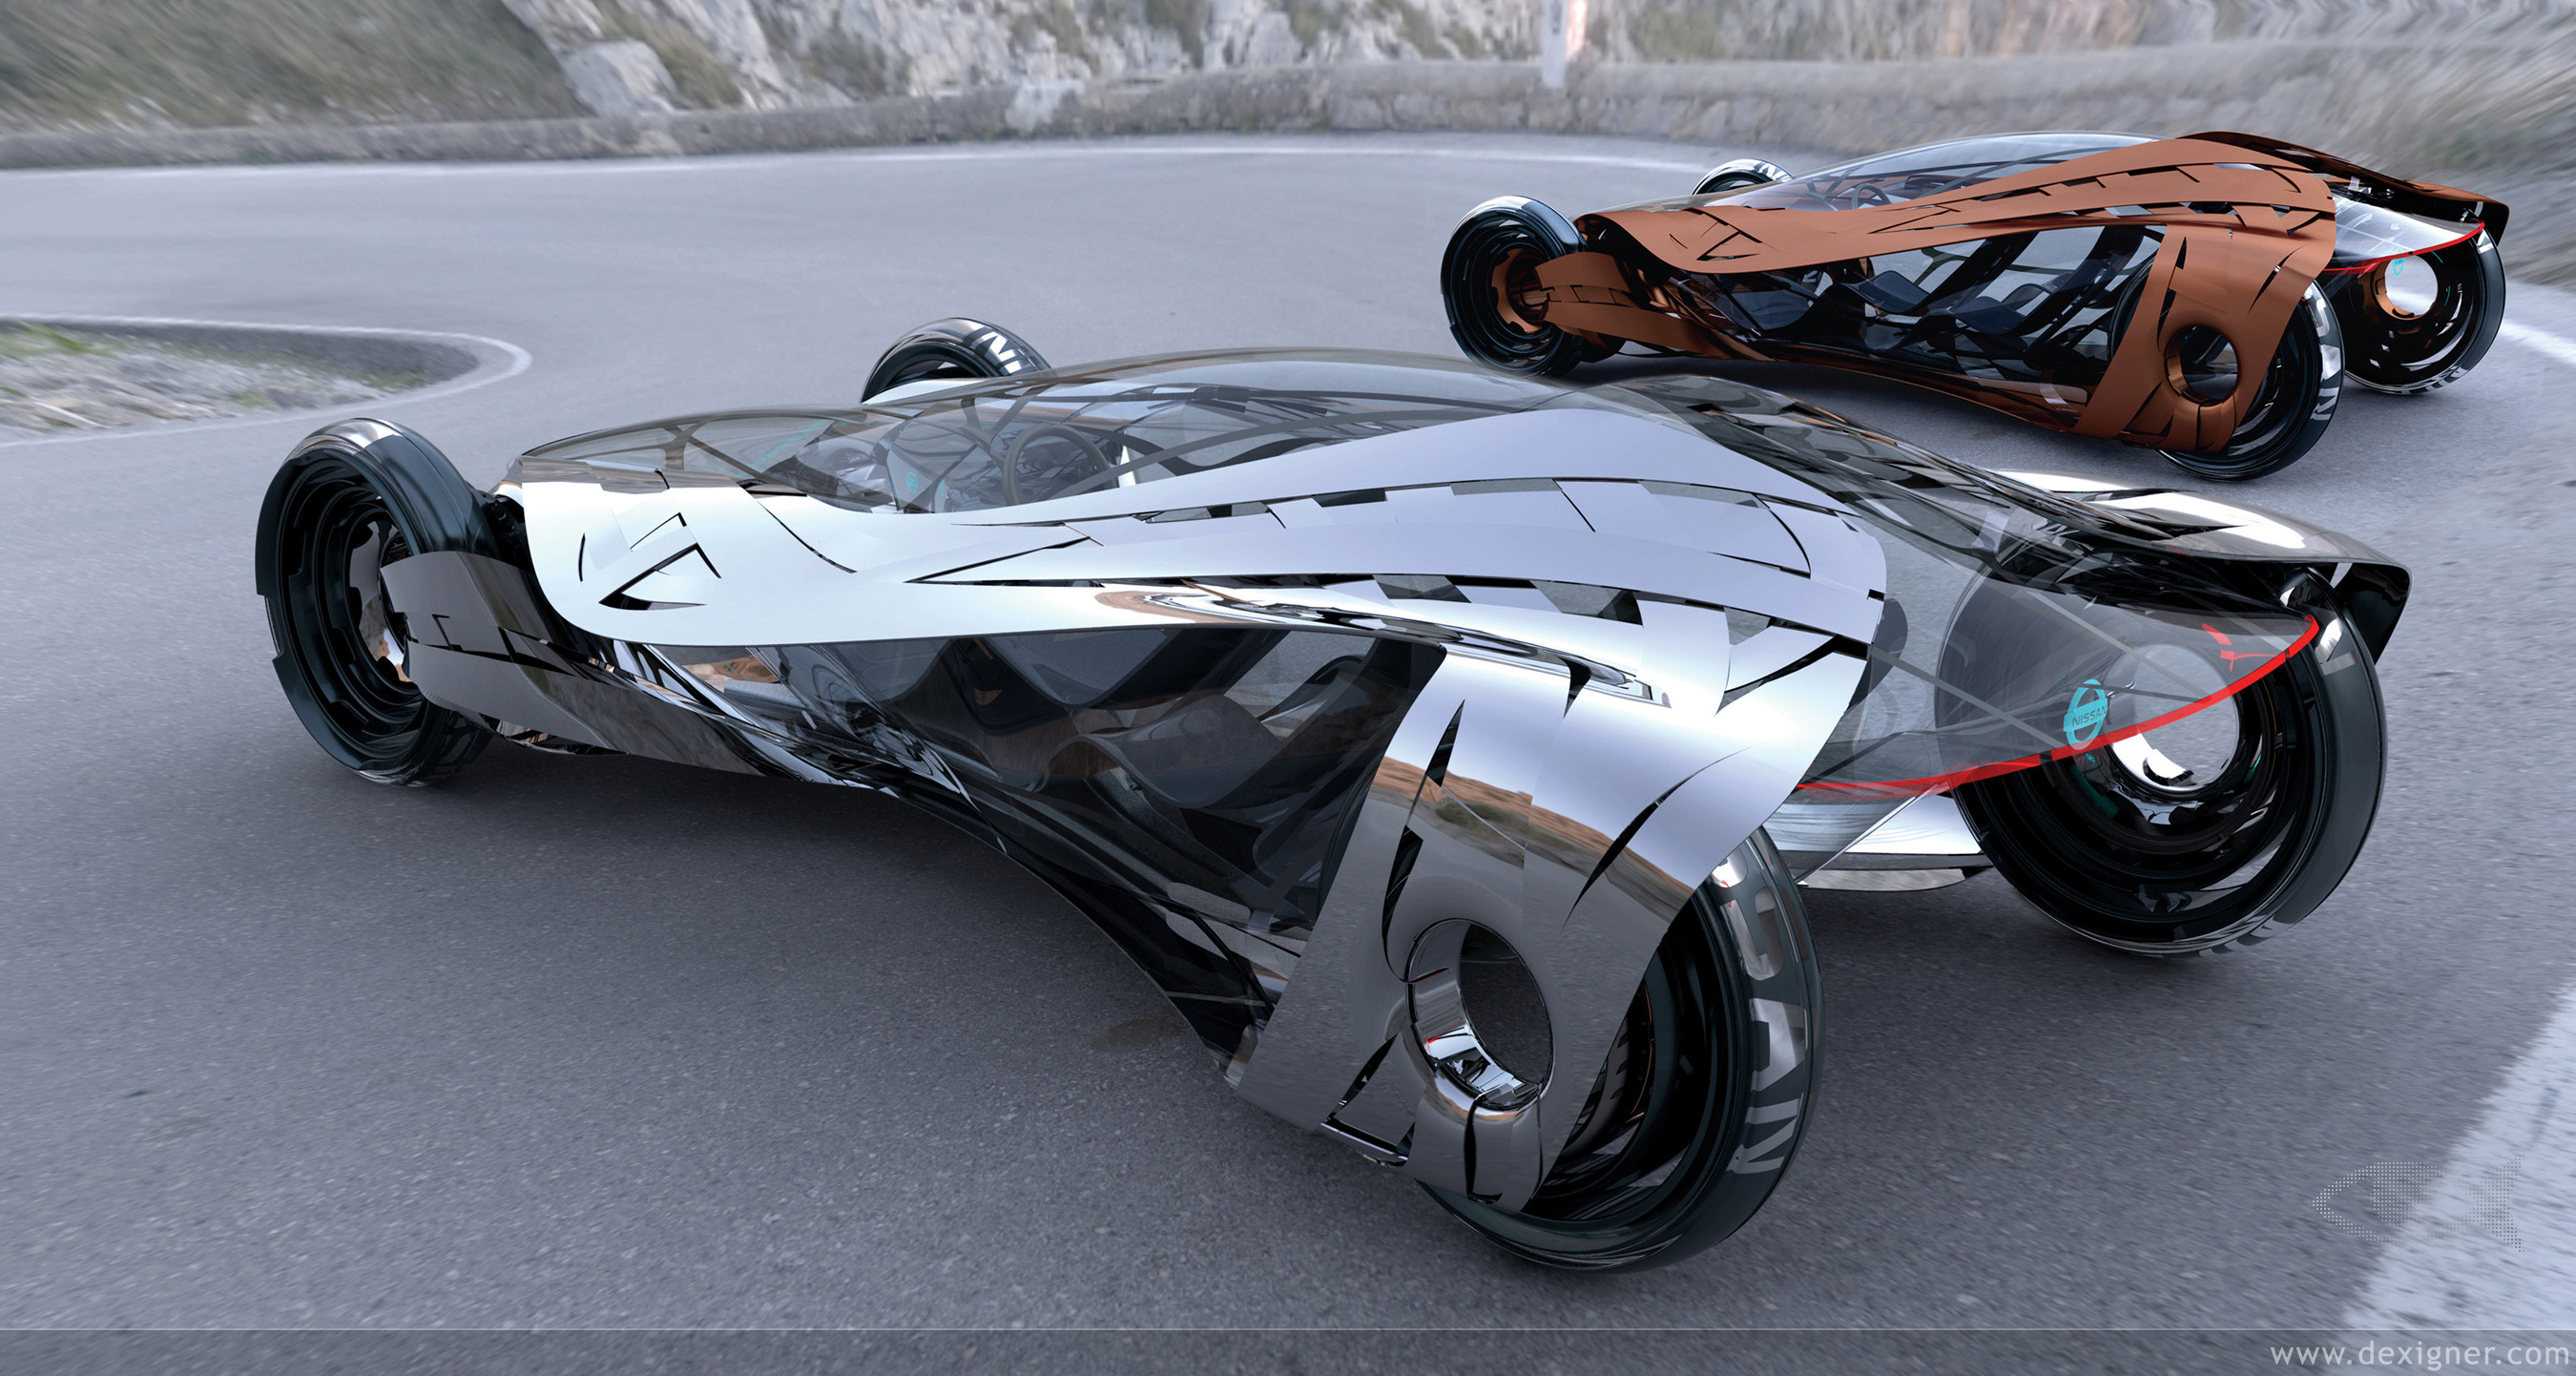 Future Cars New Concepts And Upcoming Vehicles New car 2700x1442